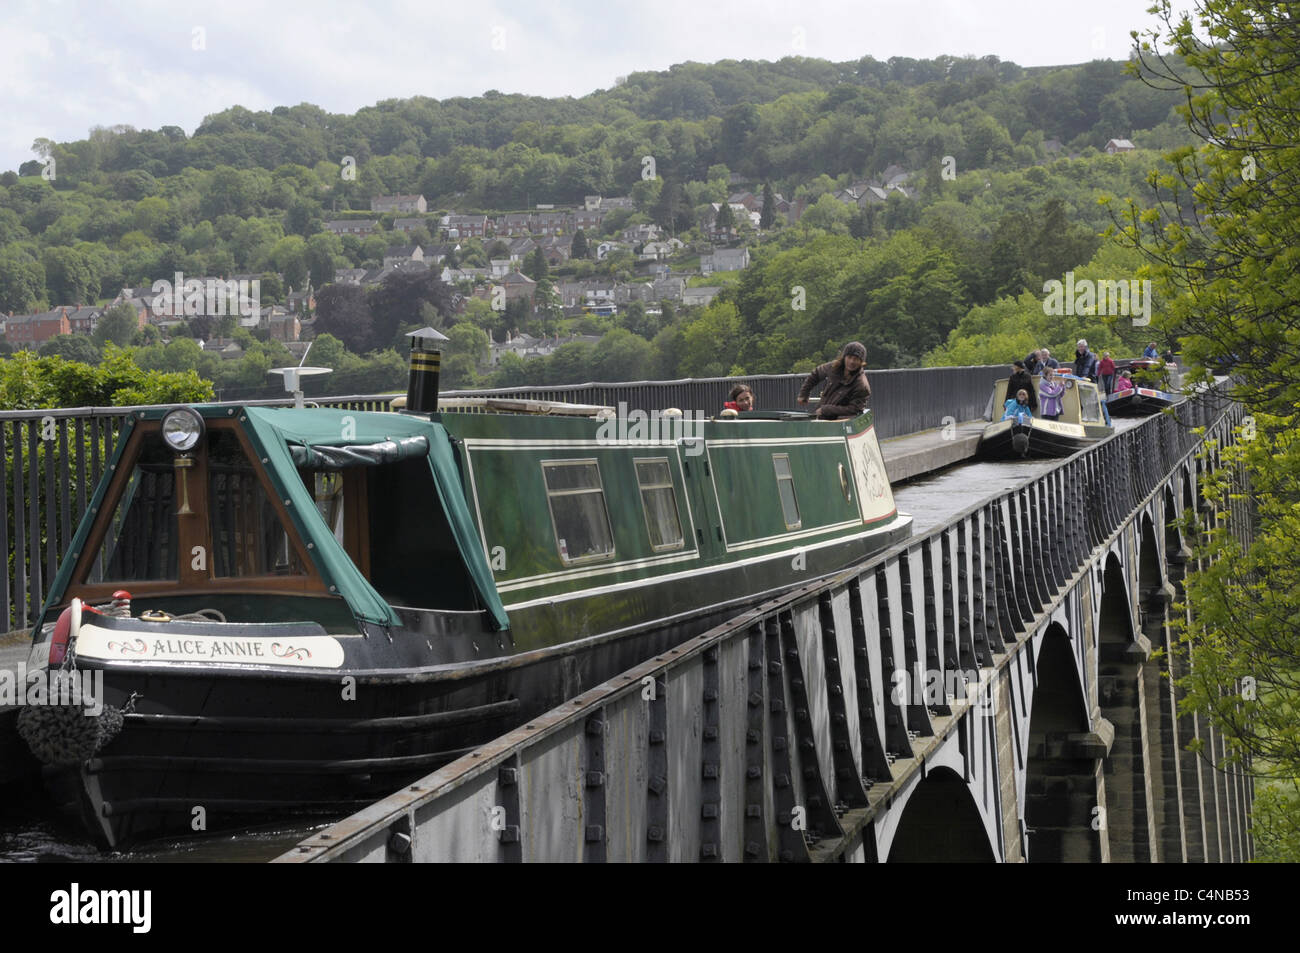 Narrow boats on Pontycysyllte aquaduct over the River Dee. - Stock Image